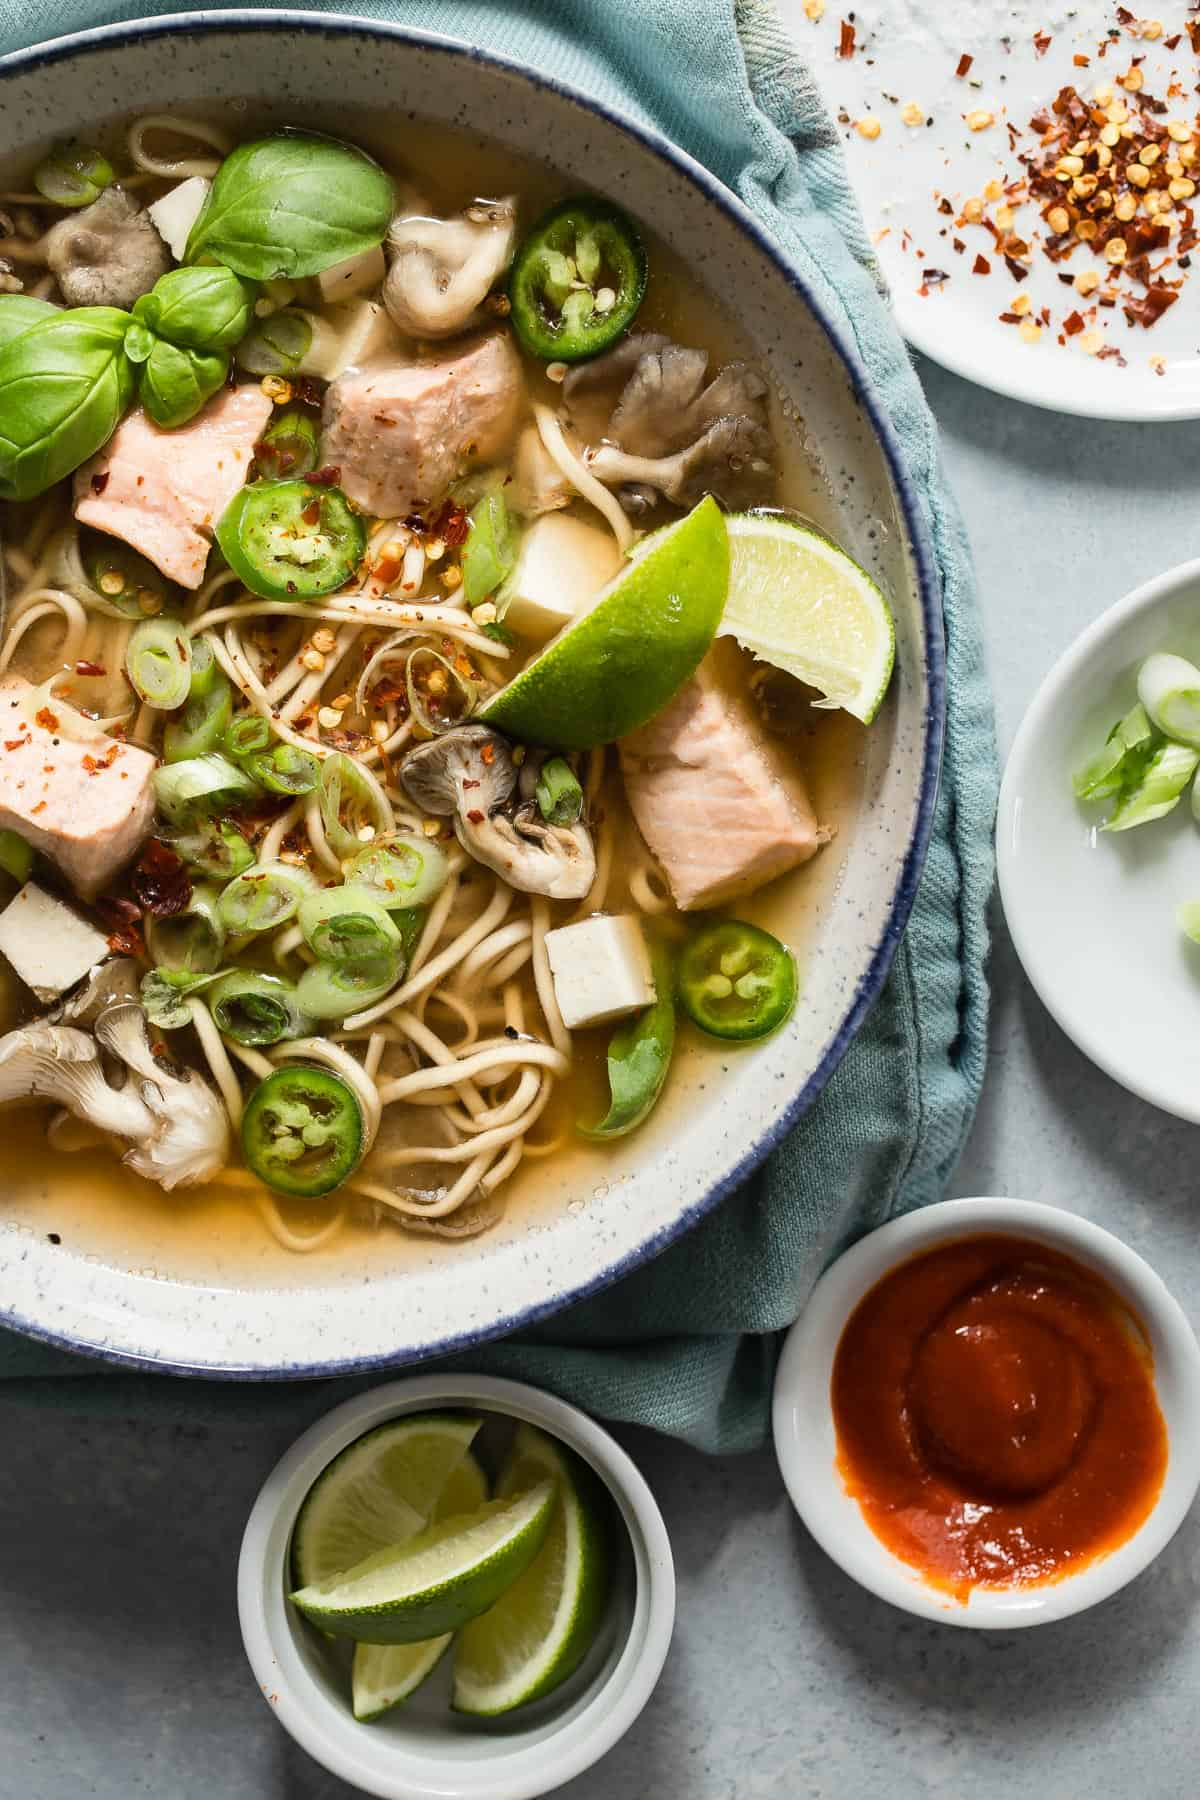 Chunks of poached salmon in a spicy miso paste broth and egg noodles. This is just like takeout only with way more attitude and bite to it!